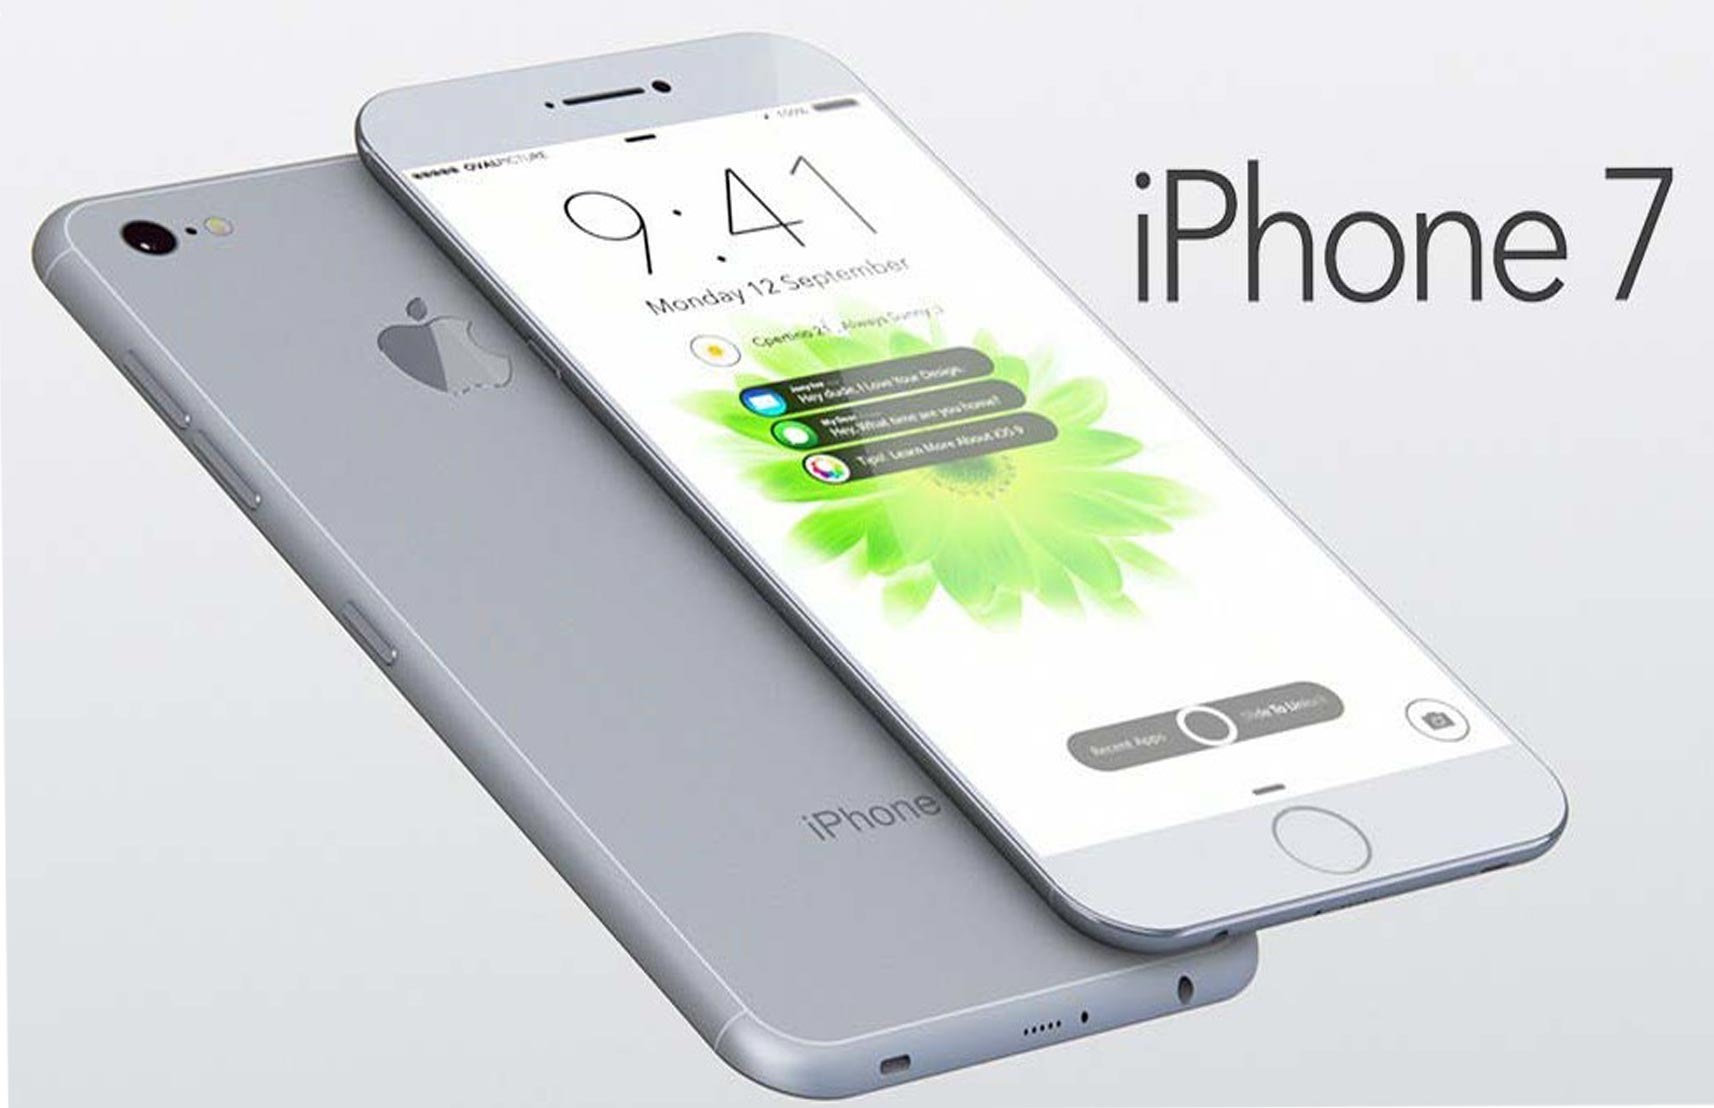 iPhone-7-release-date-specs-price-and-other-news